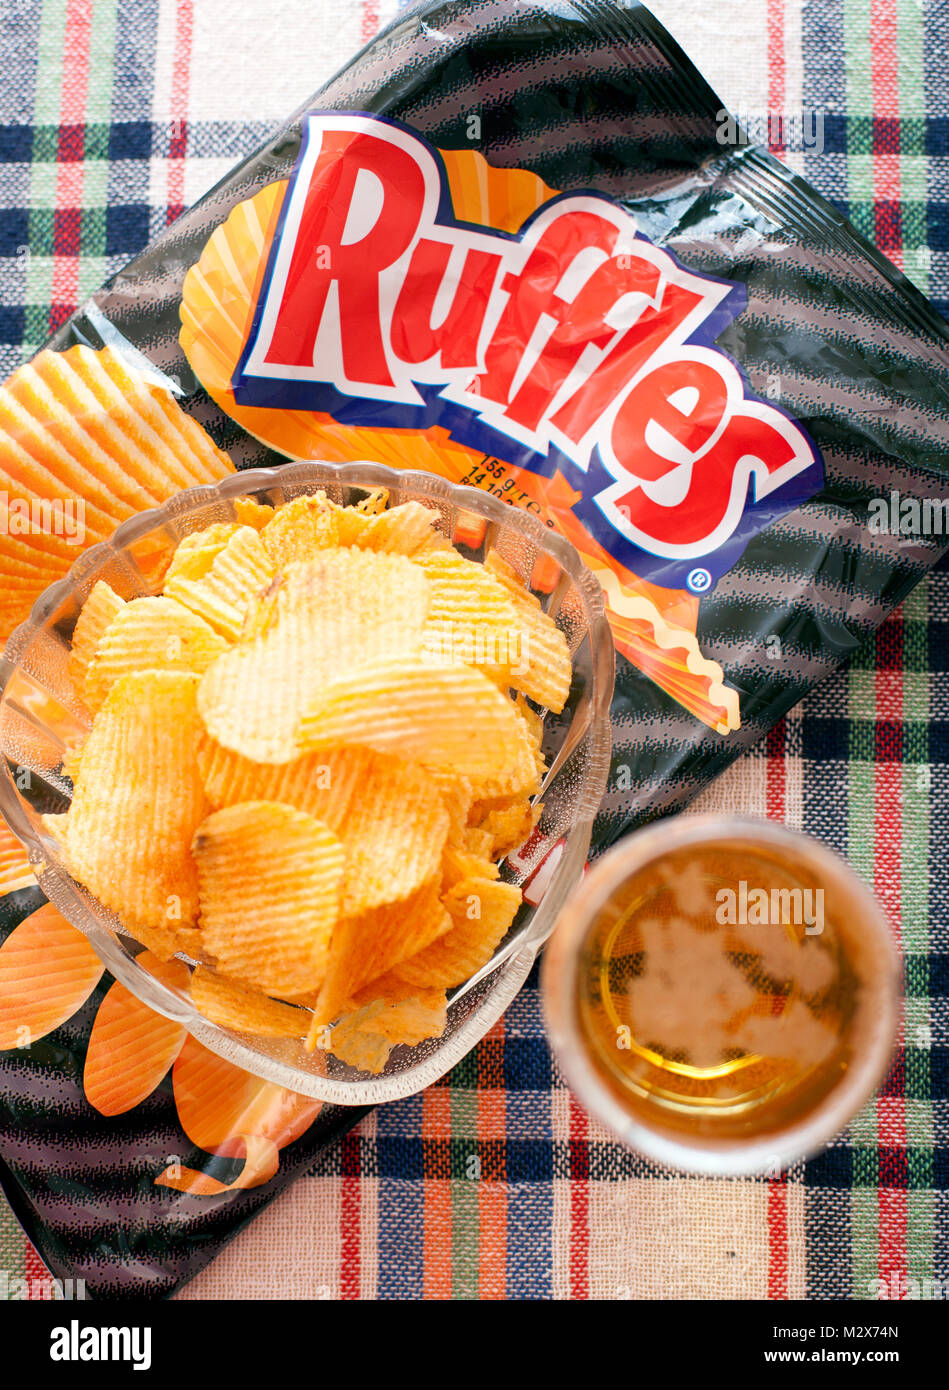 SOFIA, BULGARIA - May 11, 2015: 8.5 oz packet of RUFFLES brand cheddar and sour cream flavored potato chips - Stock Image